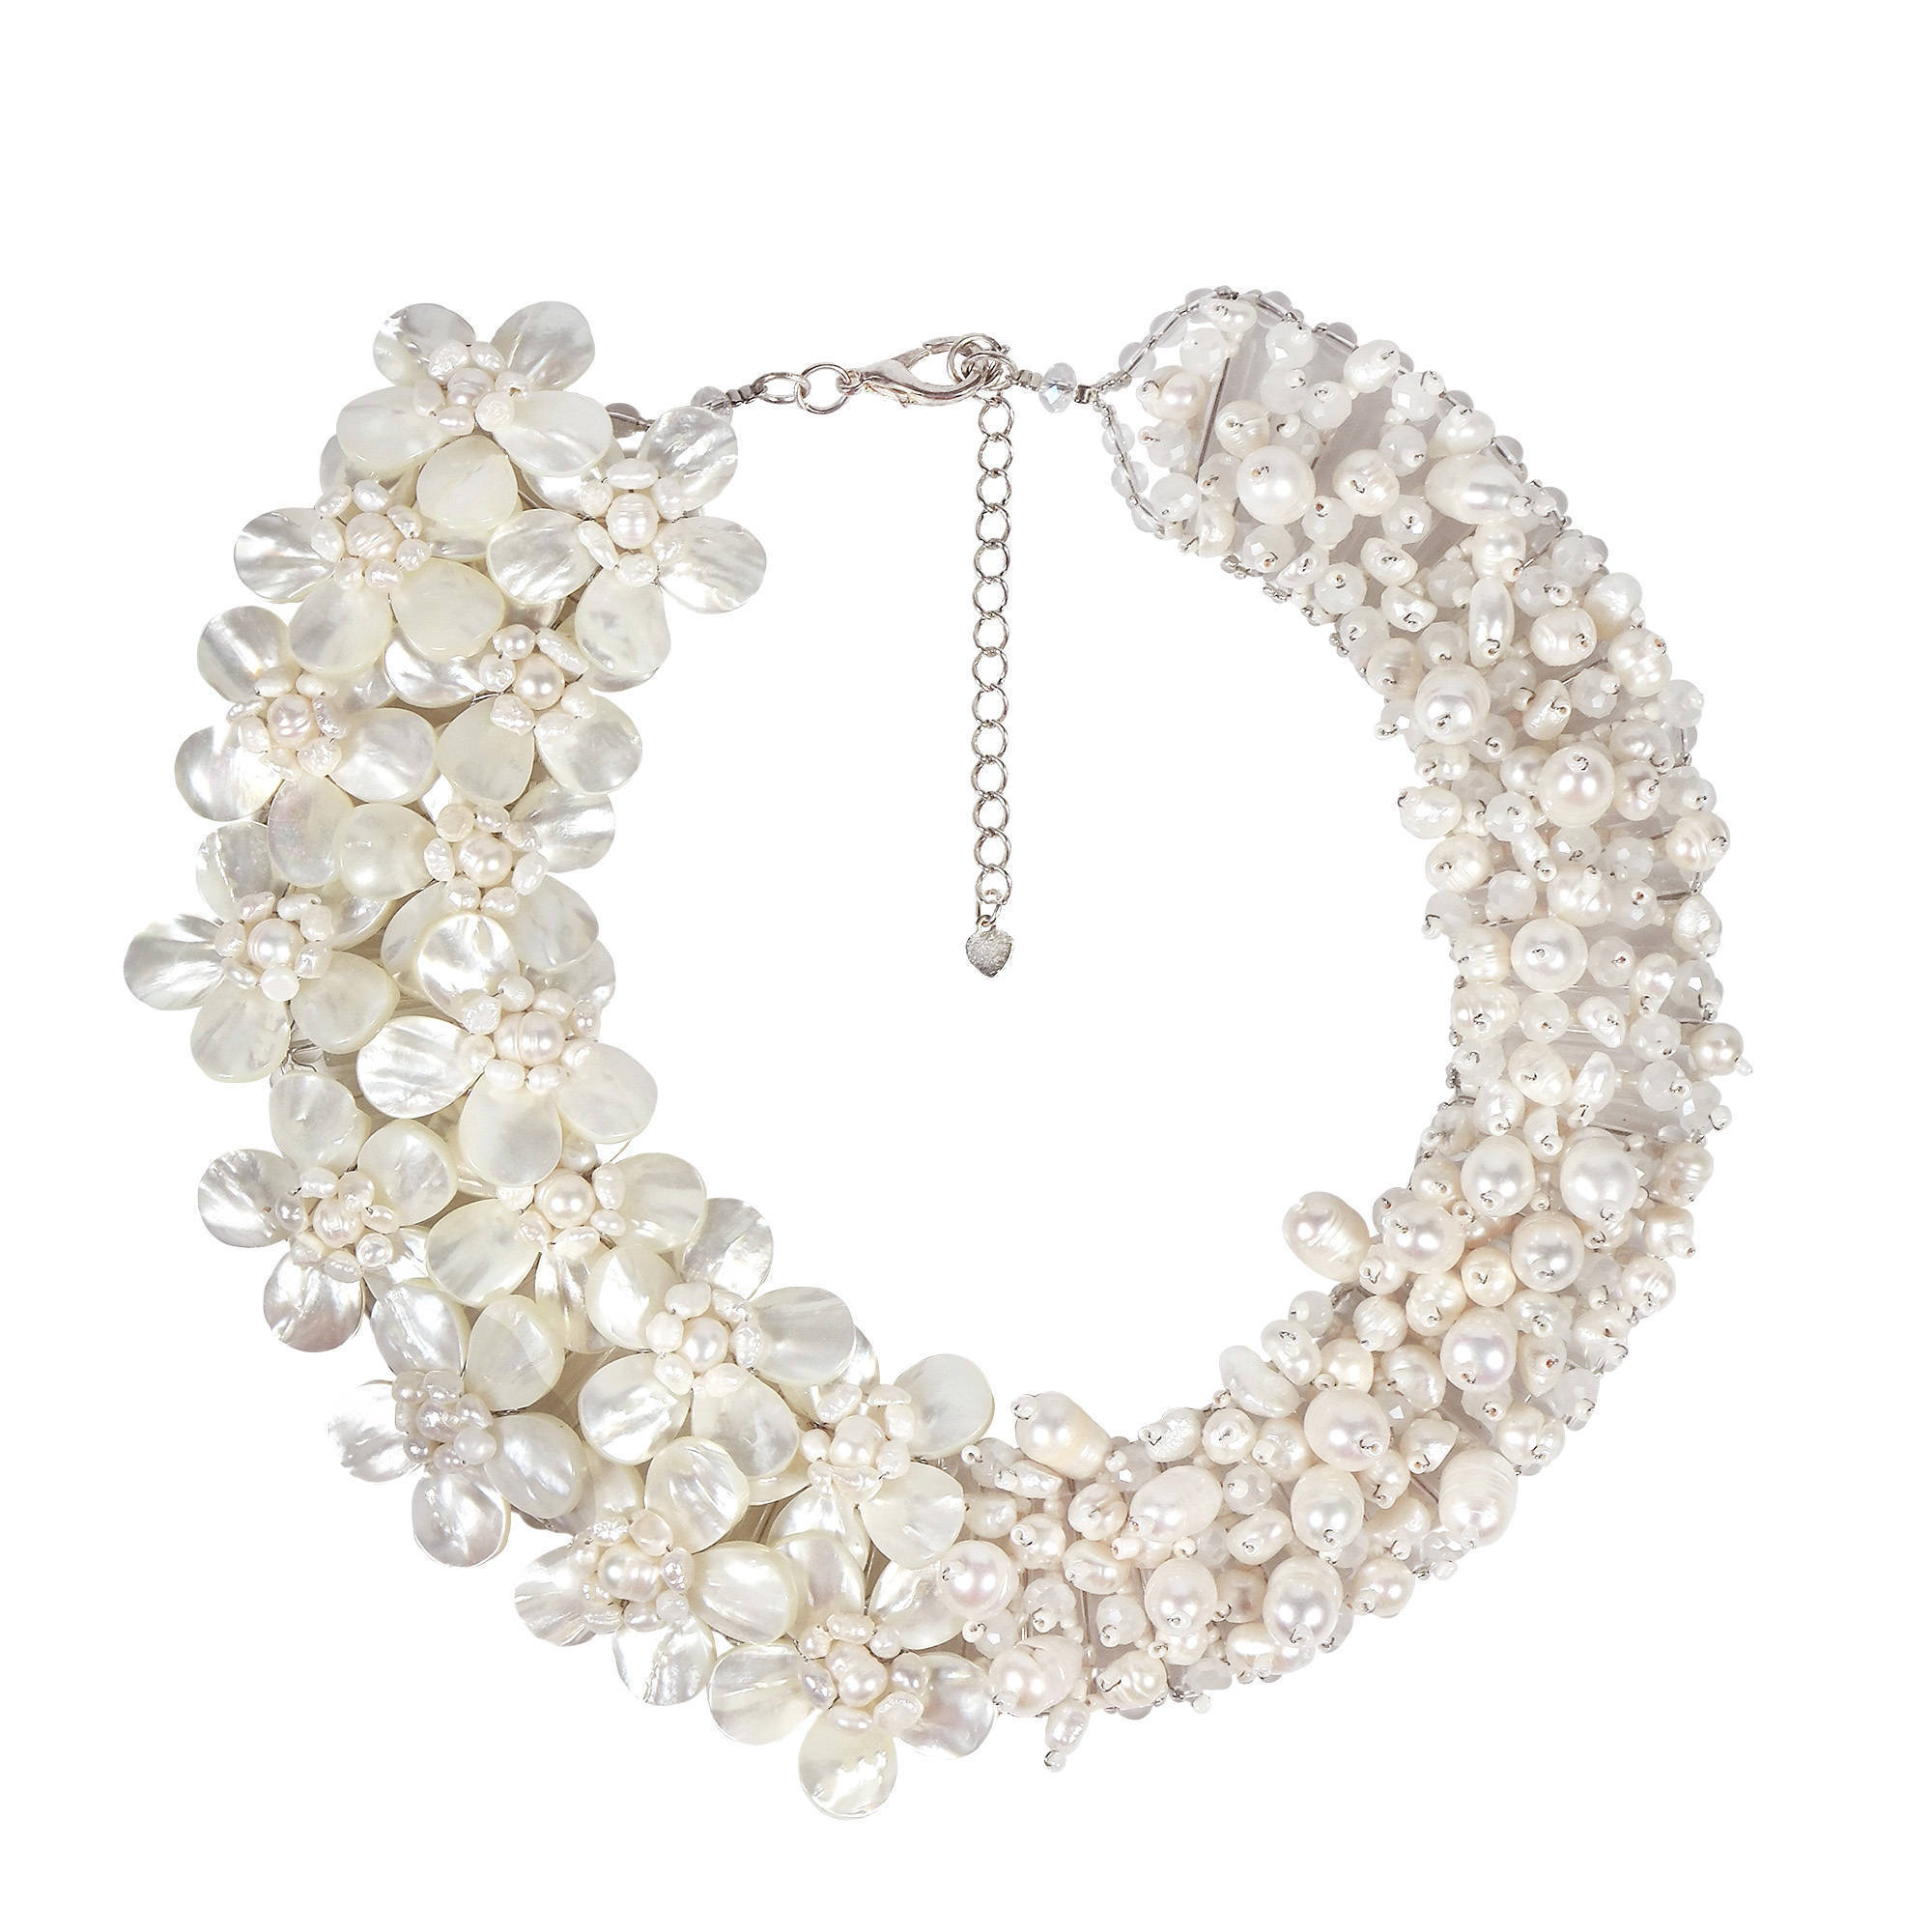 Shop Handmade Gorgeous White Pearl And Mop Floral Bridal Necklace